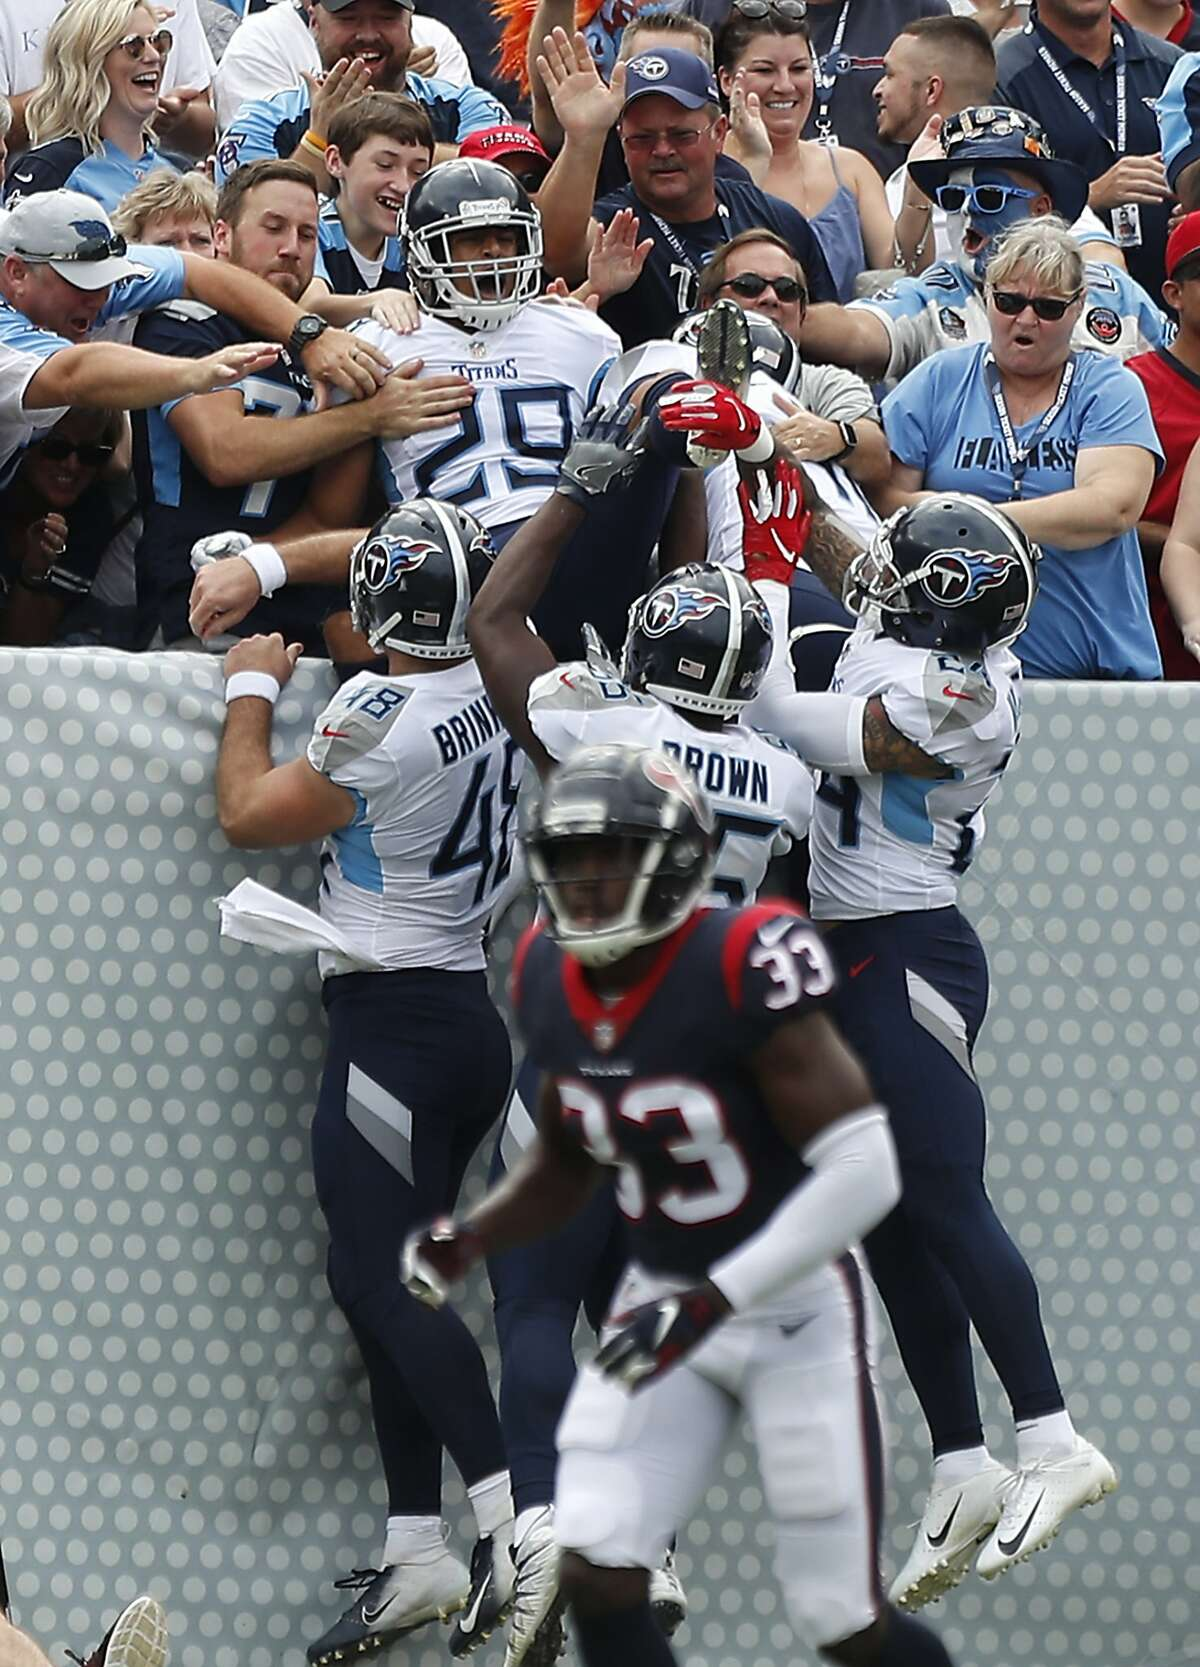 6. TENNESSEE TITANS ATTENDANCE COST: $873 TICKETS: $387 HOTEL: $476